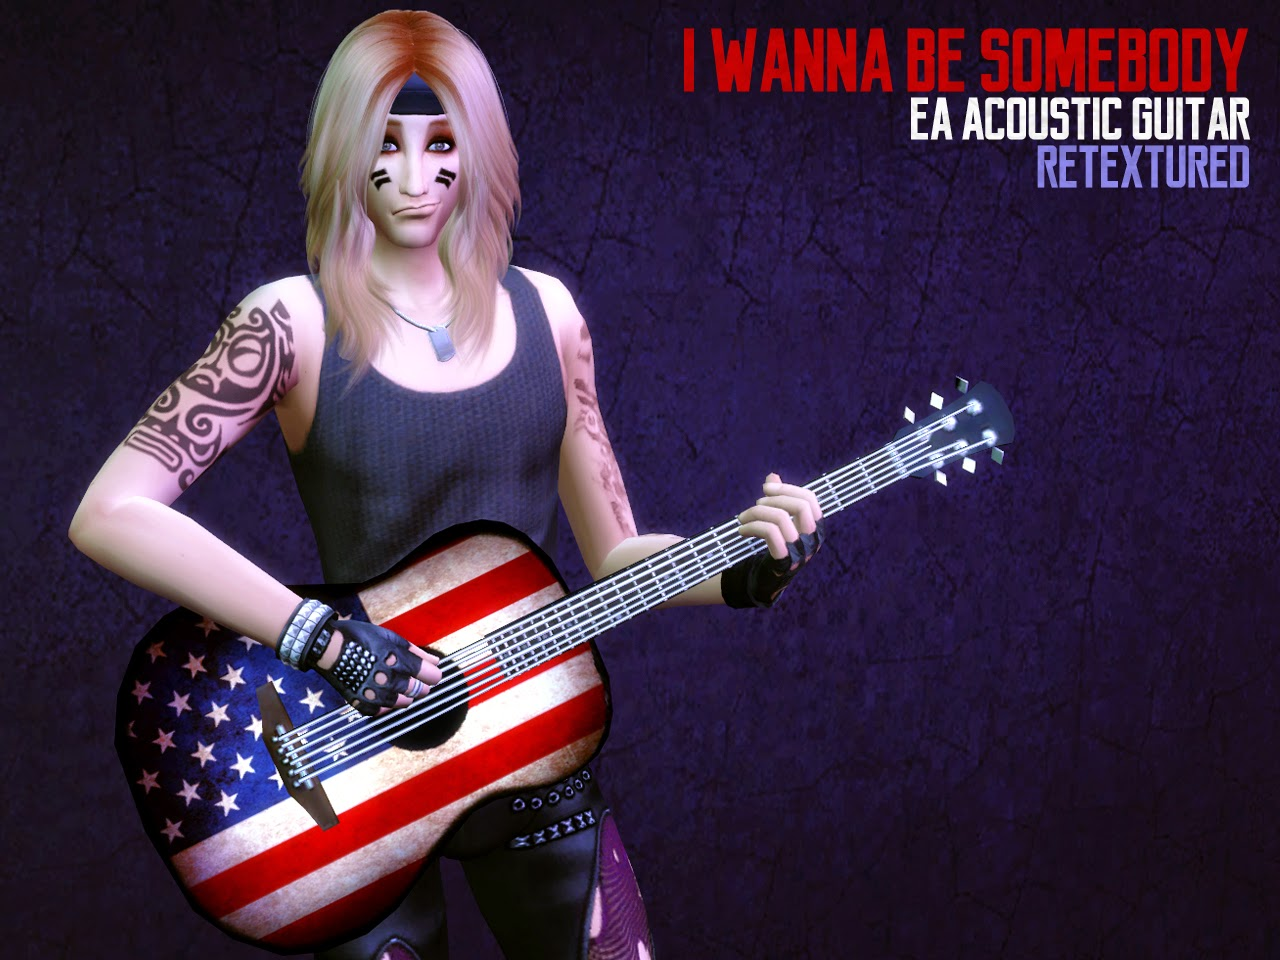 EA Acoustic Guitar Retexture by Astraea Nevermore